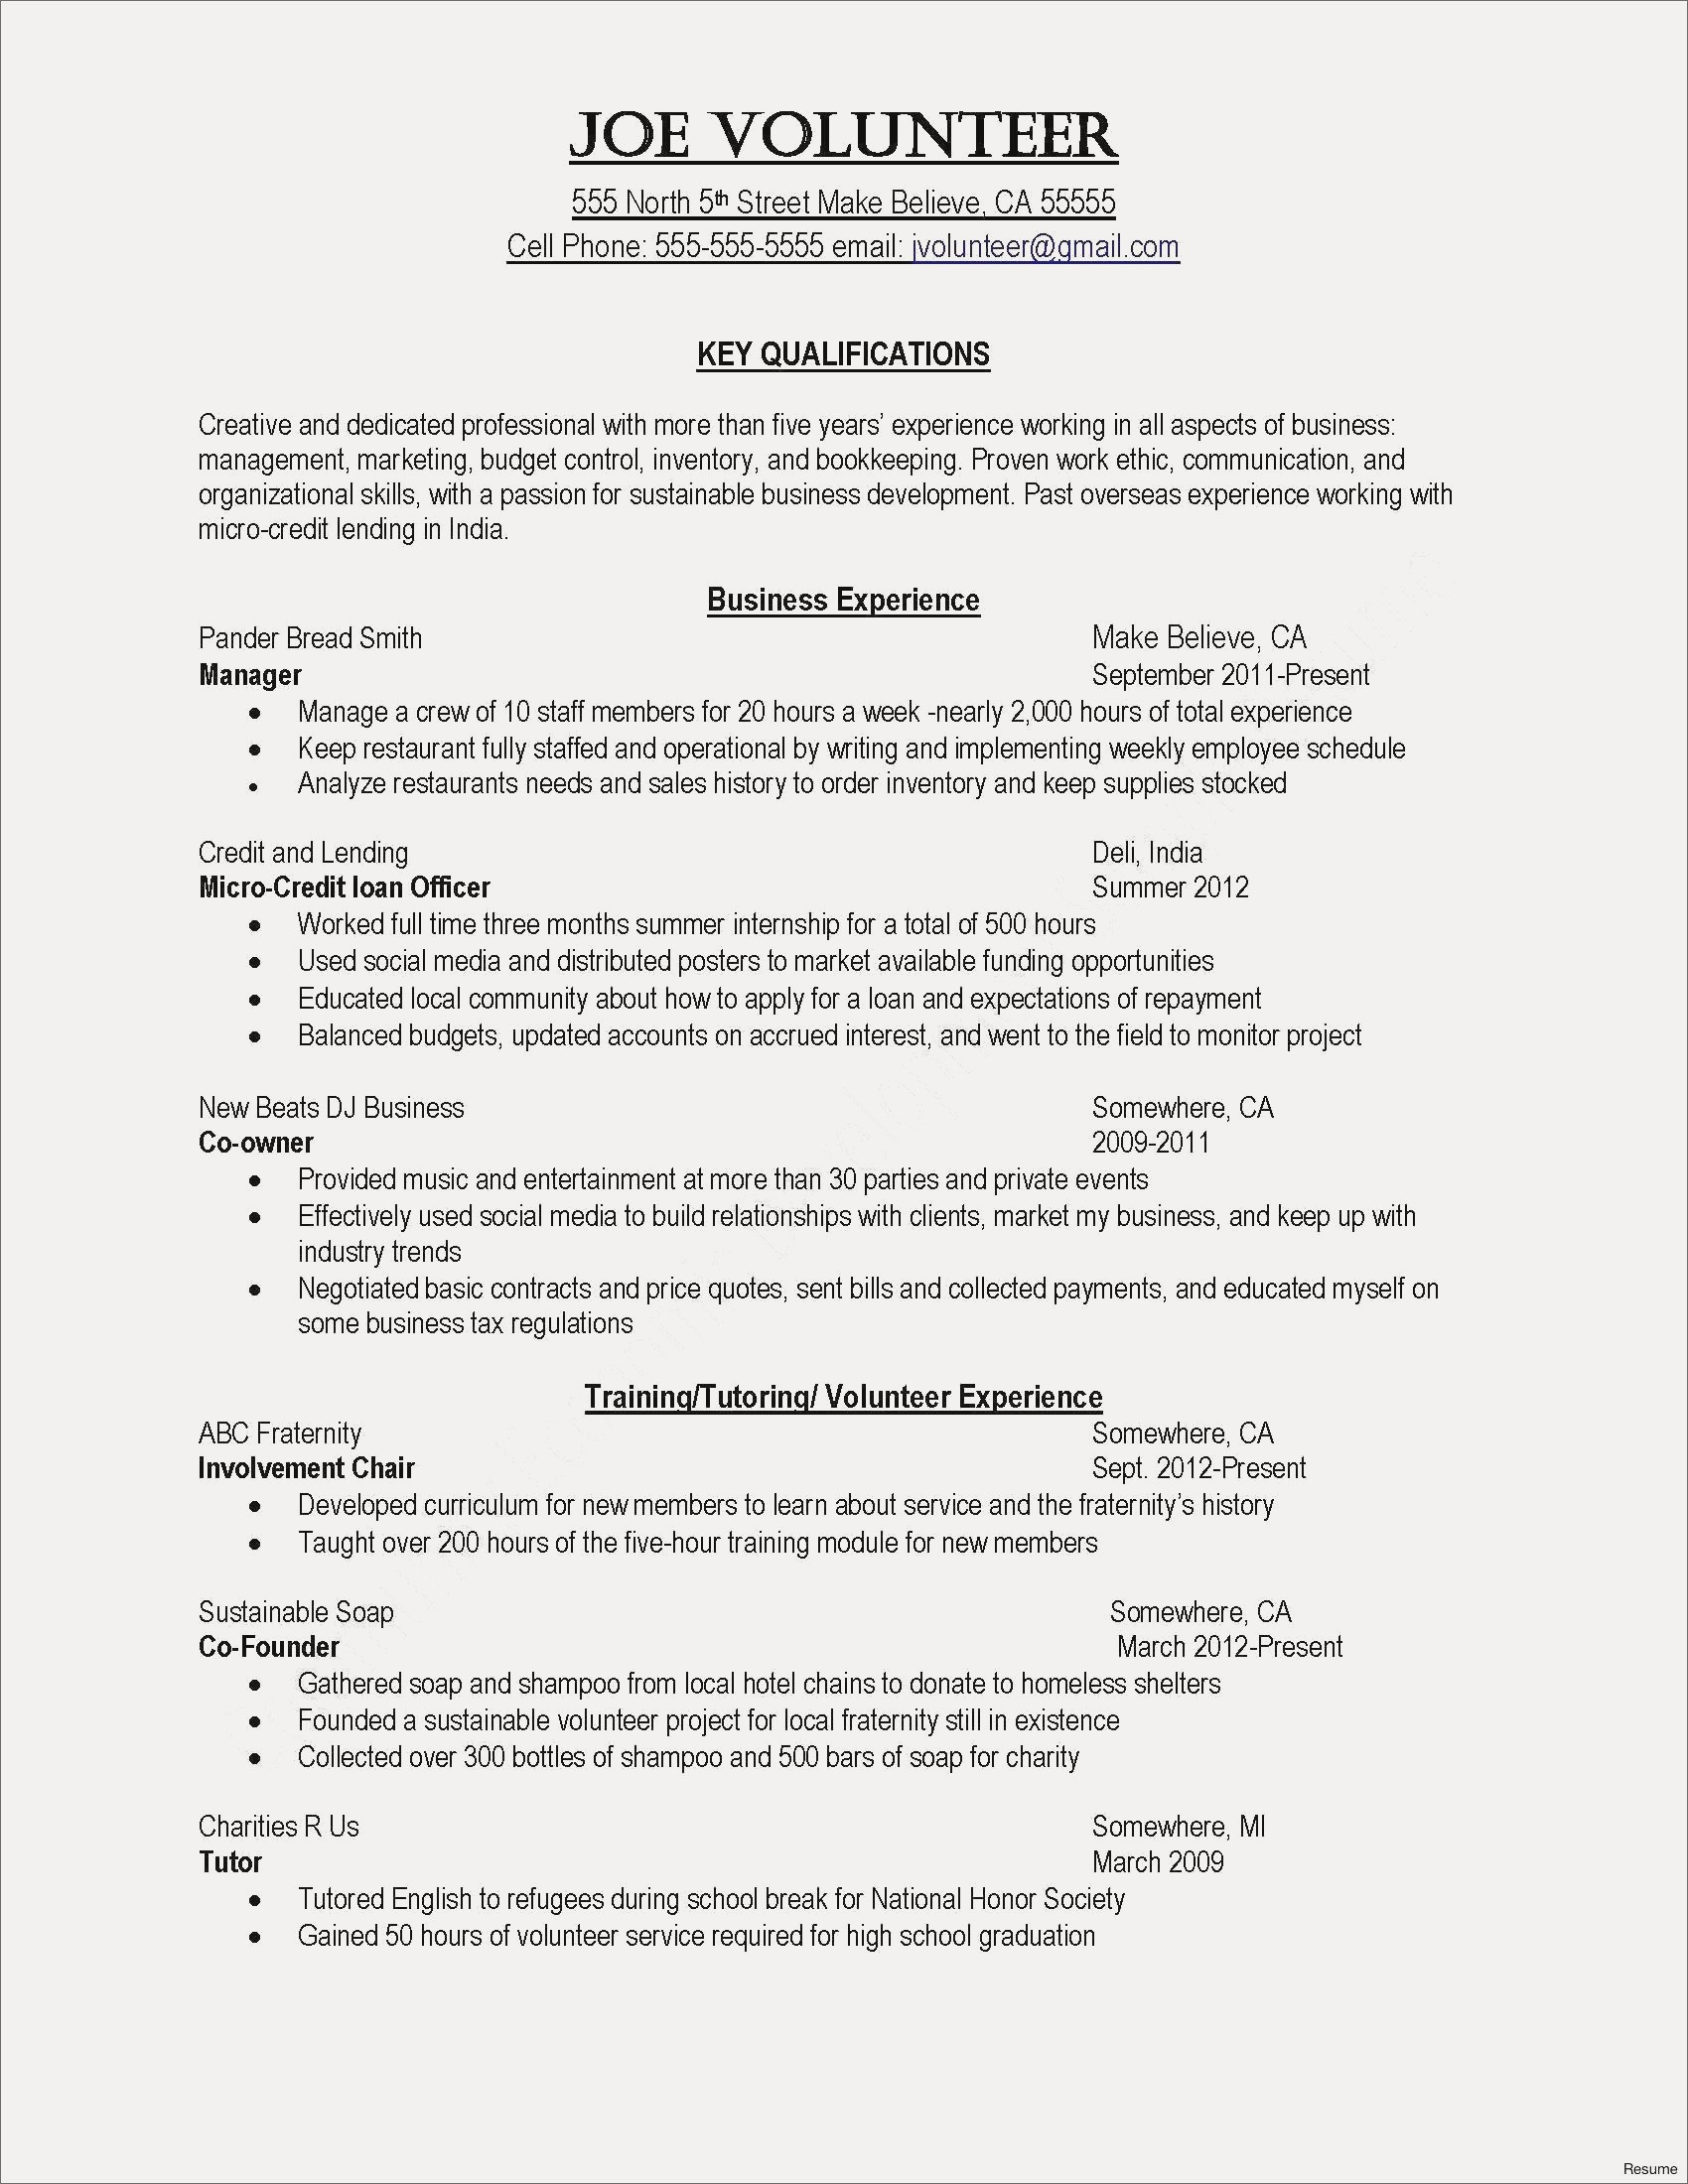 Skills for Resume for High School Student - Teenage Resume Template Refrence Best Resume for Highschool Students